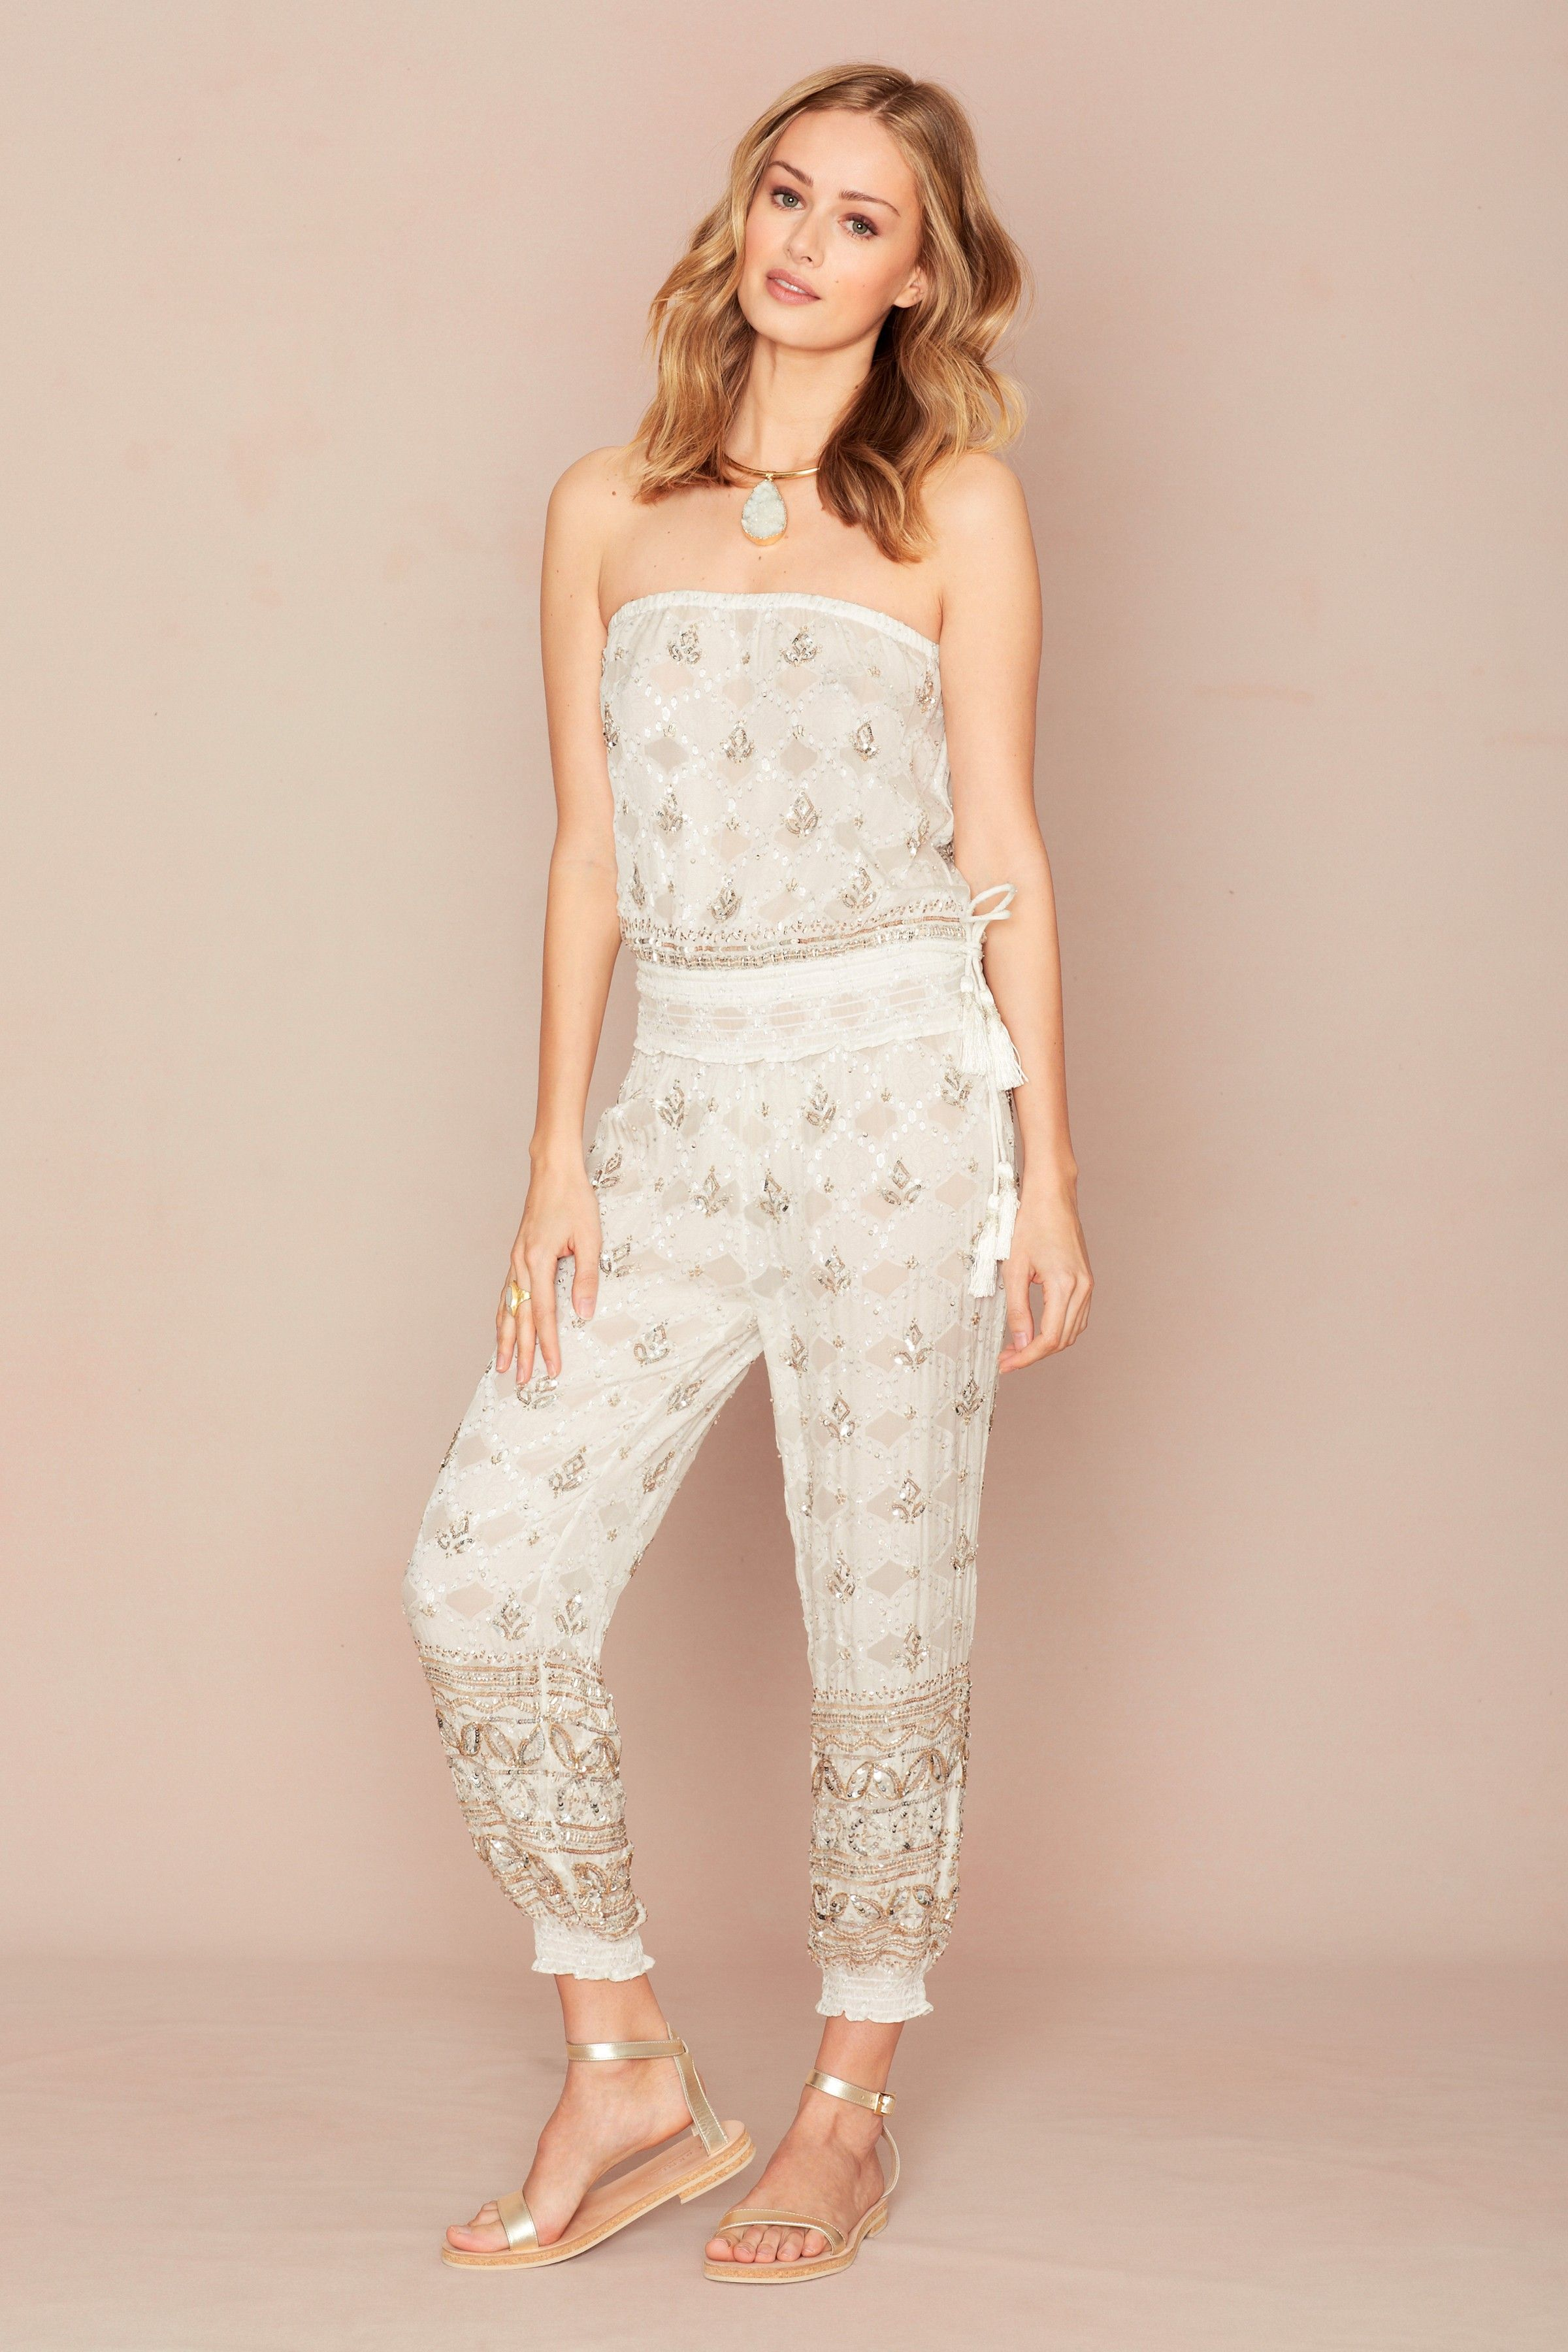 Jovet Jumpsuit from the Calypso St. Barth Mariee Collection, available in select boutiques and online